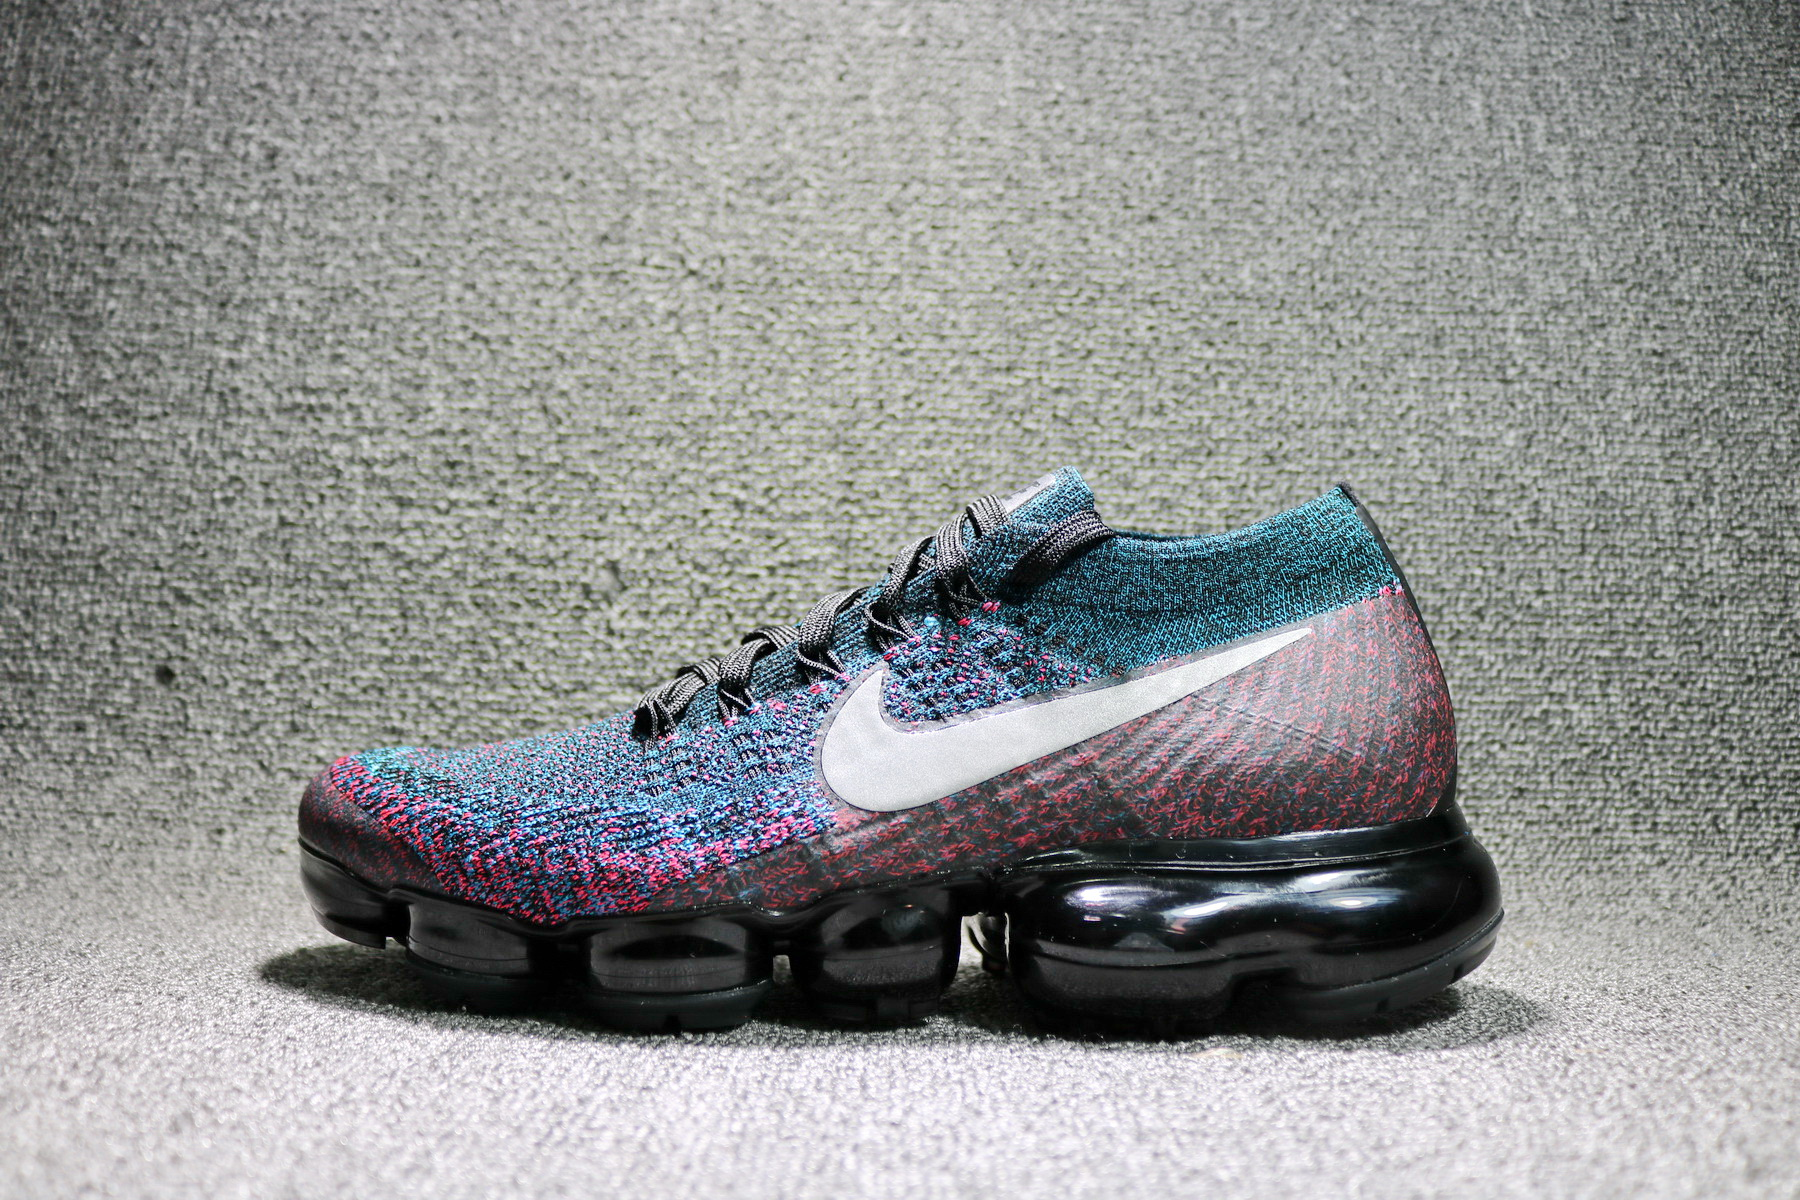 competitive price 2b120 85789 Nike Air VaporMax Flyknit Black Purple Red colorful 849558-403 - Febbuy